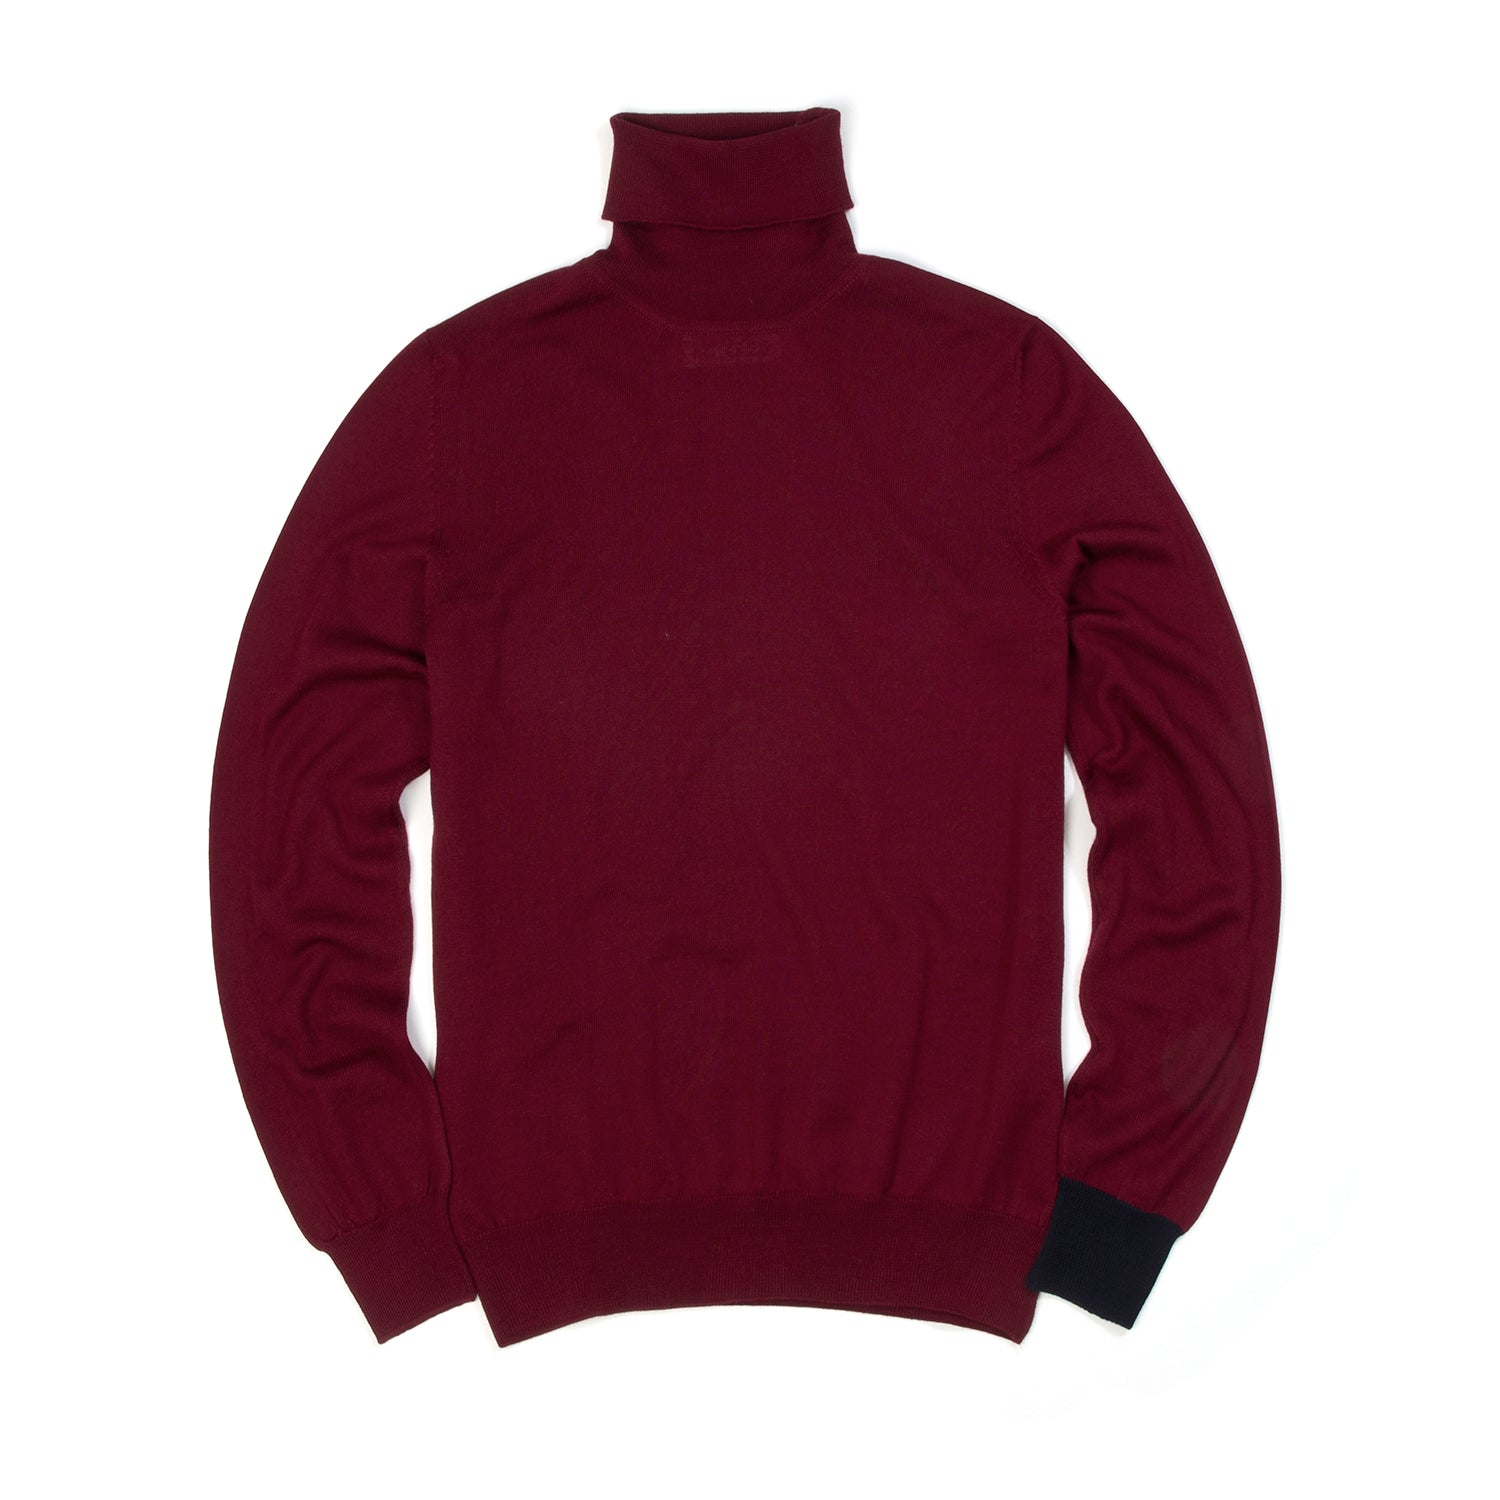 LC23 Turtle Neck Sweater